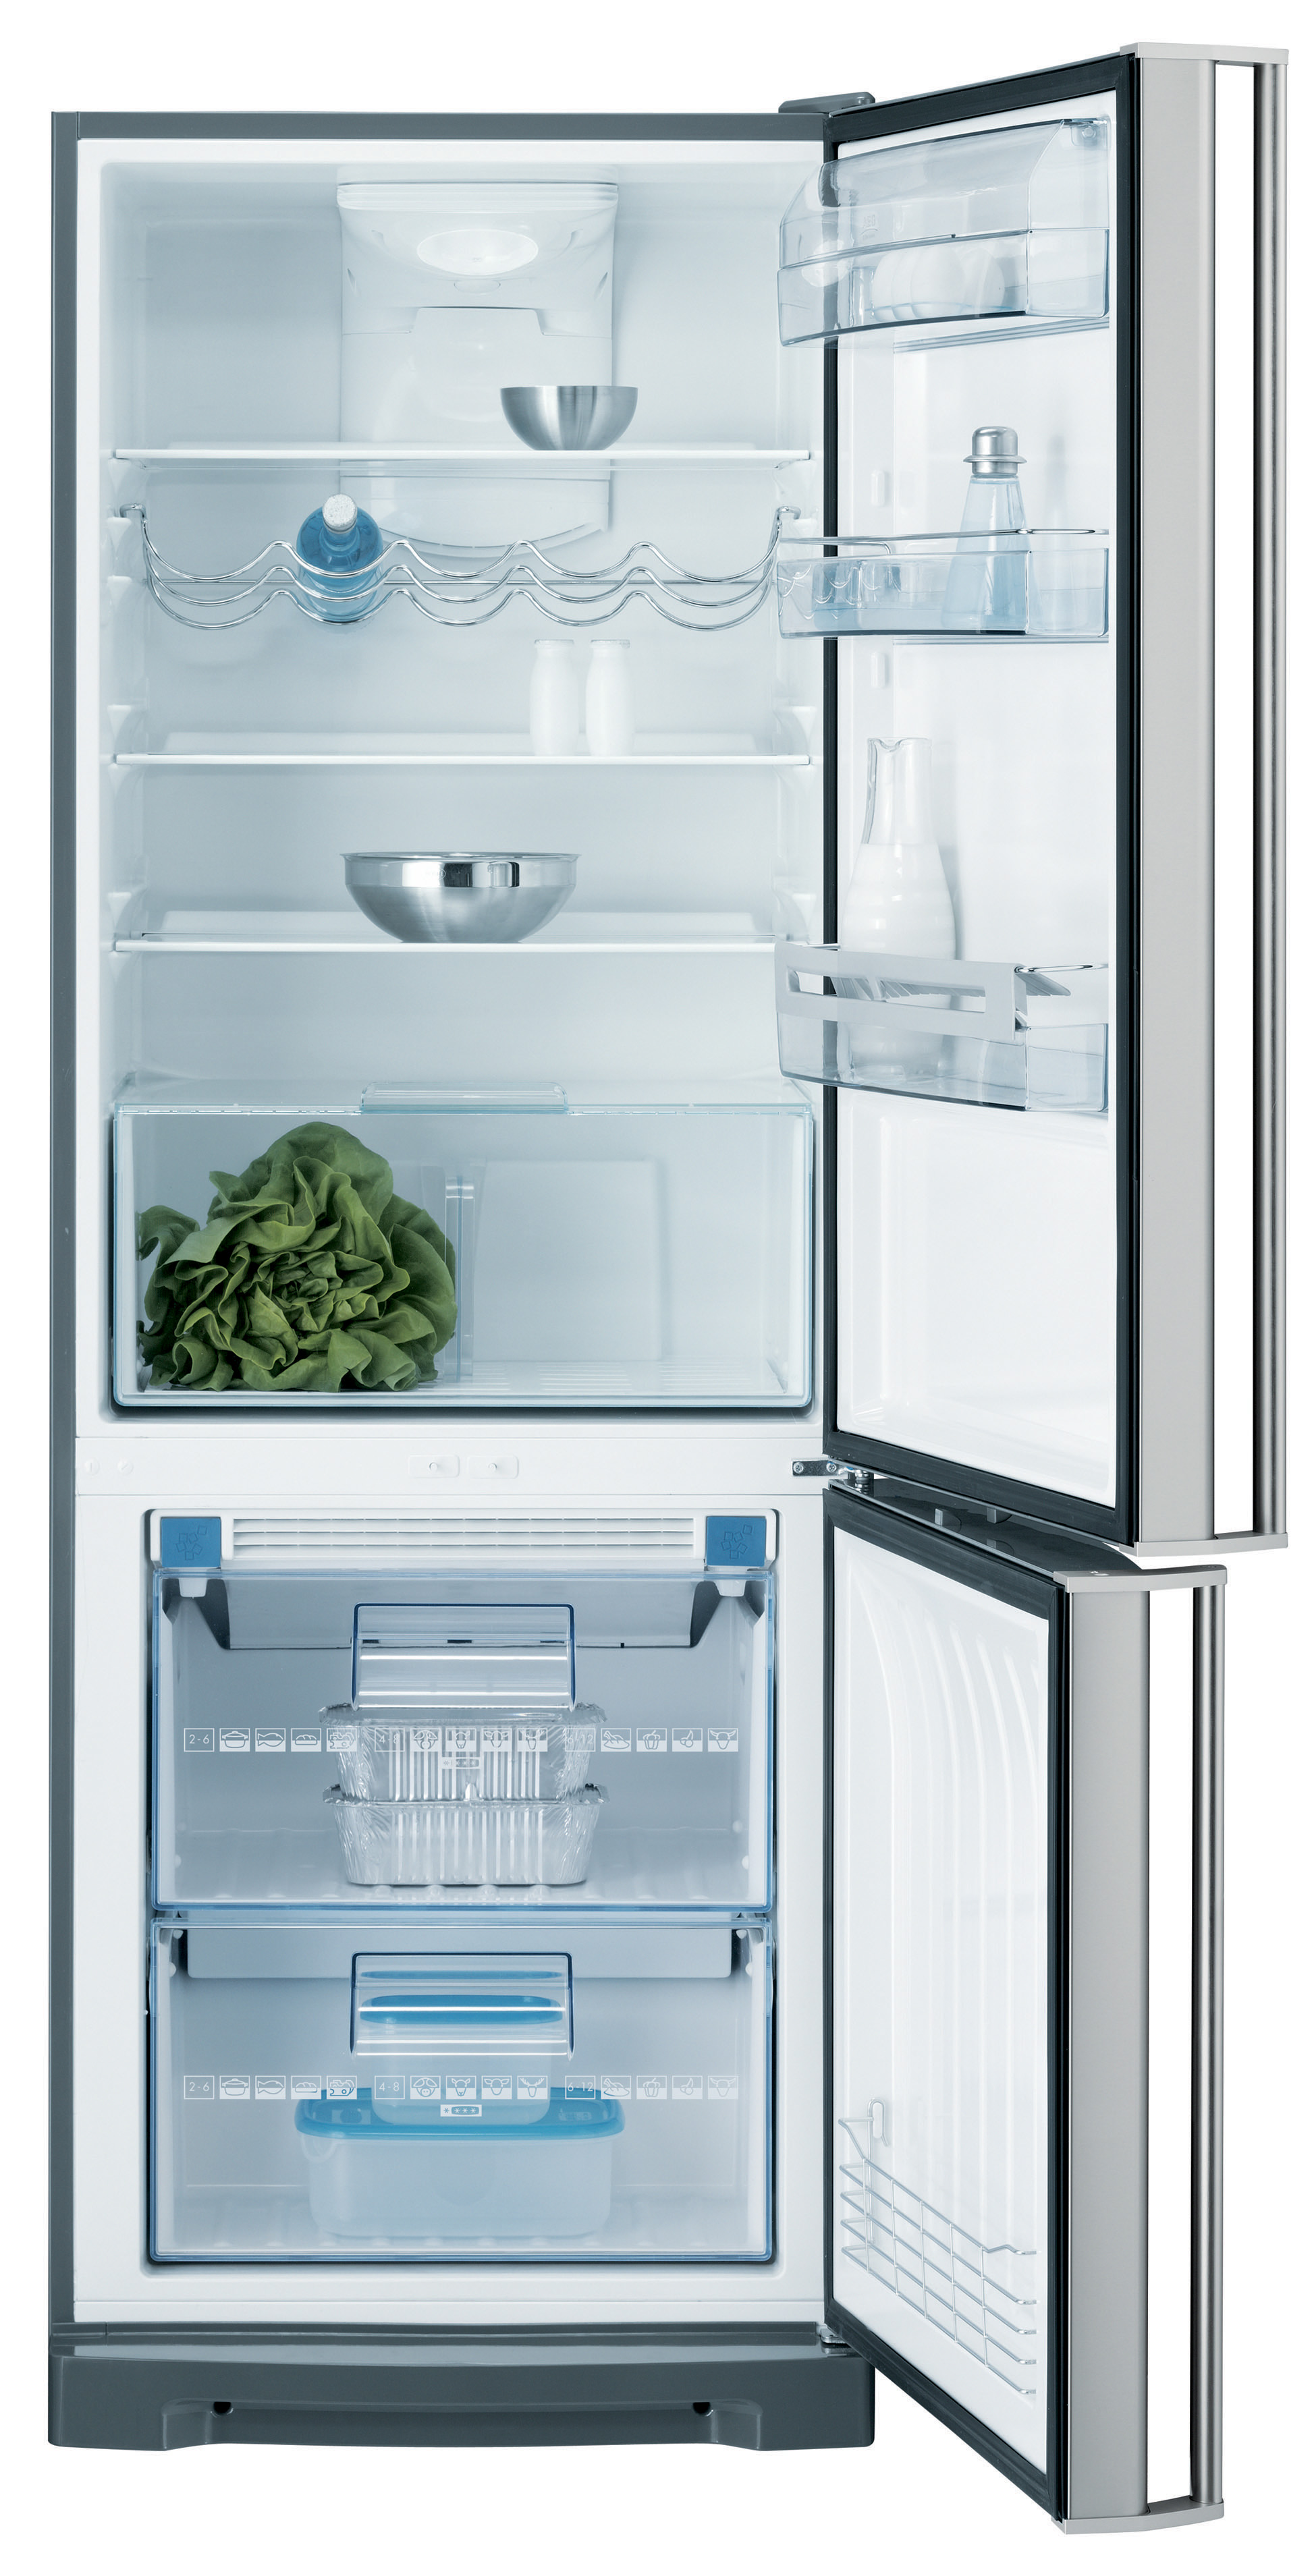 Electrolux Clipart Refrigerator.